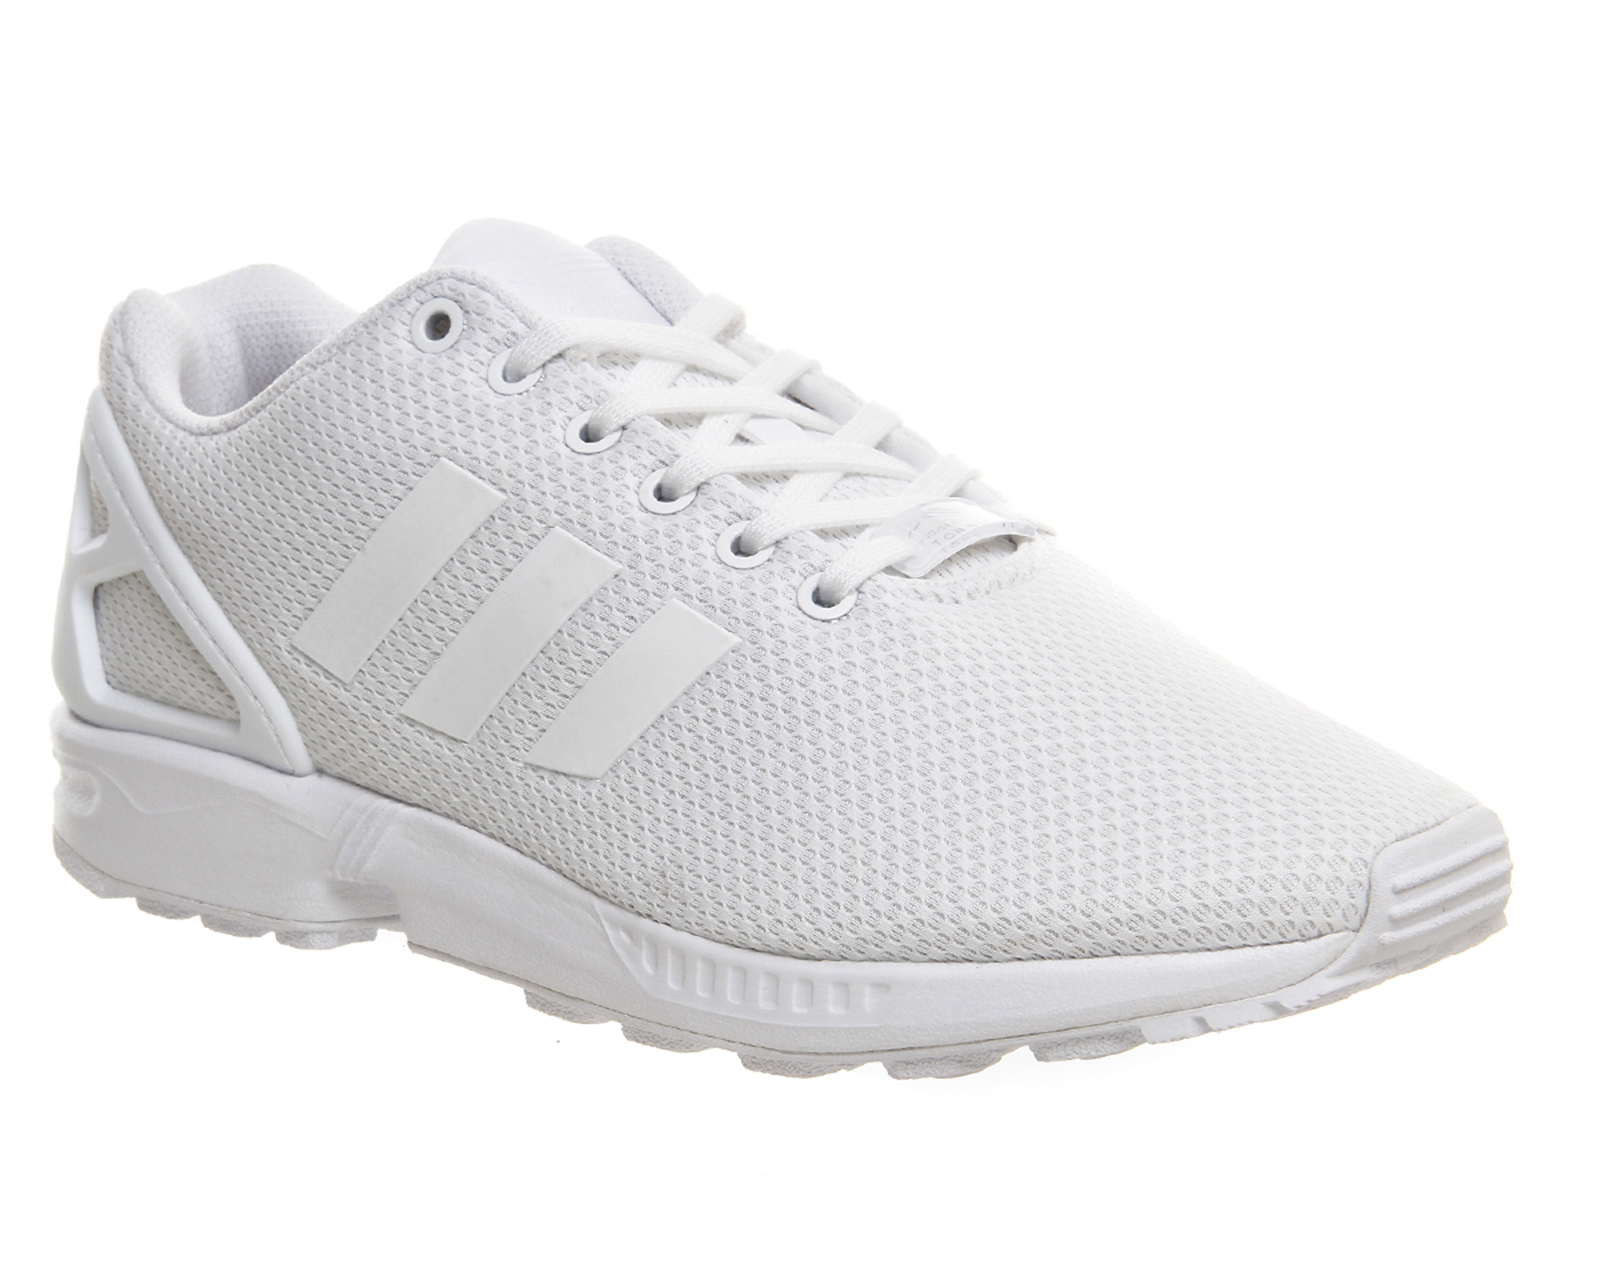 mens adidas zx flux triple white trainers shoes. Black Bedroom Furniture Sets. Home Design Ideas